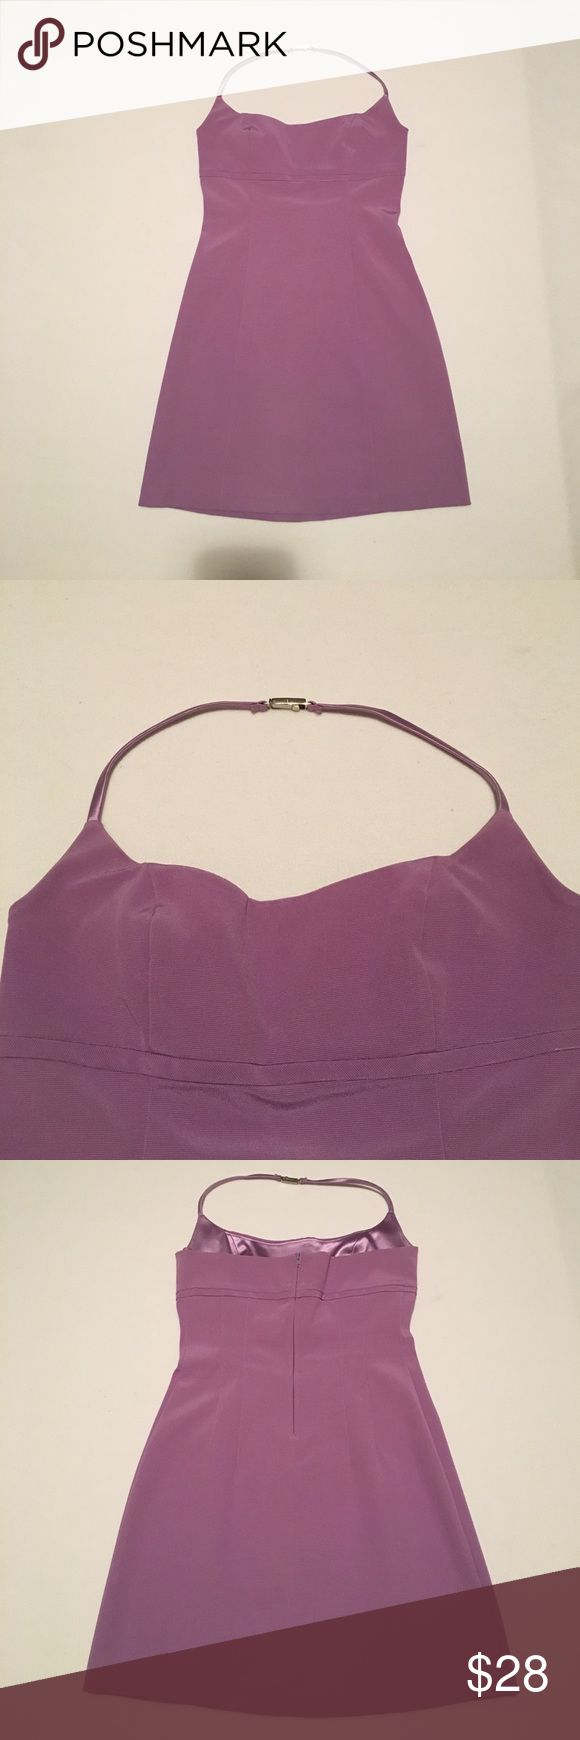 Lavender mini halter dress Short halter dress with clasp behind neck. Zipper in back. Size S. Very good condition. Style #4512 Cut #2257. 50% Rayon, 40% acetate, 10% Lycra. maria bianca nero Dresses Mini